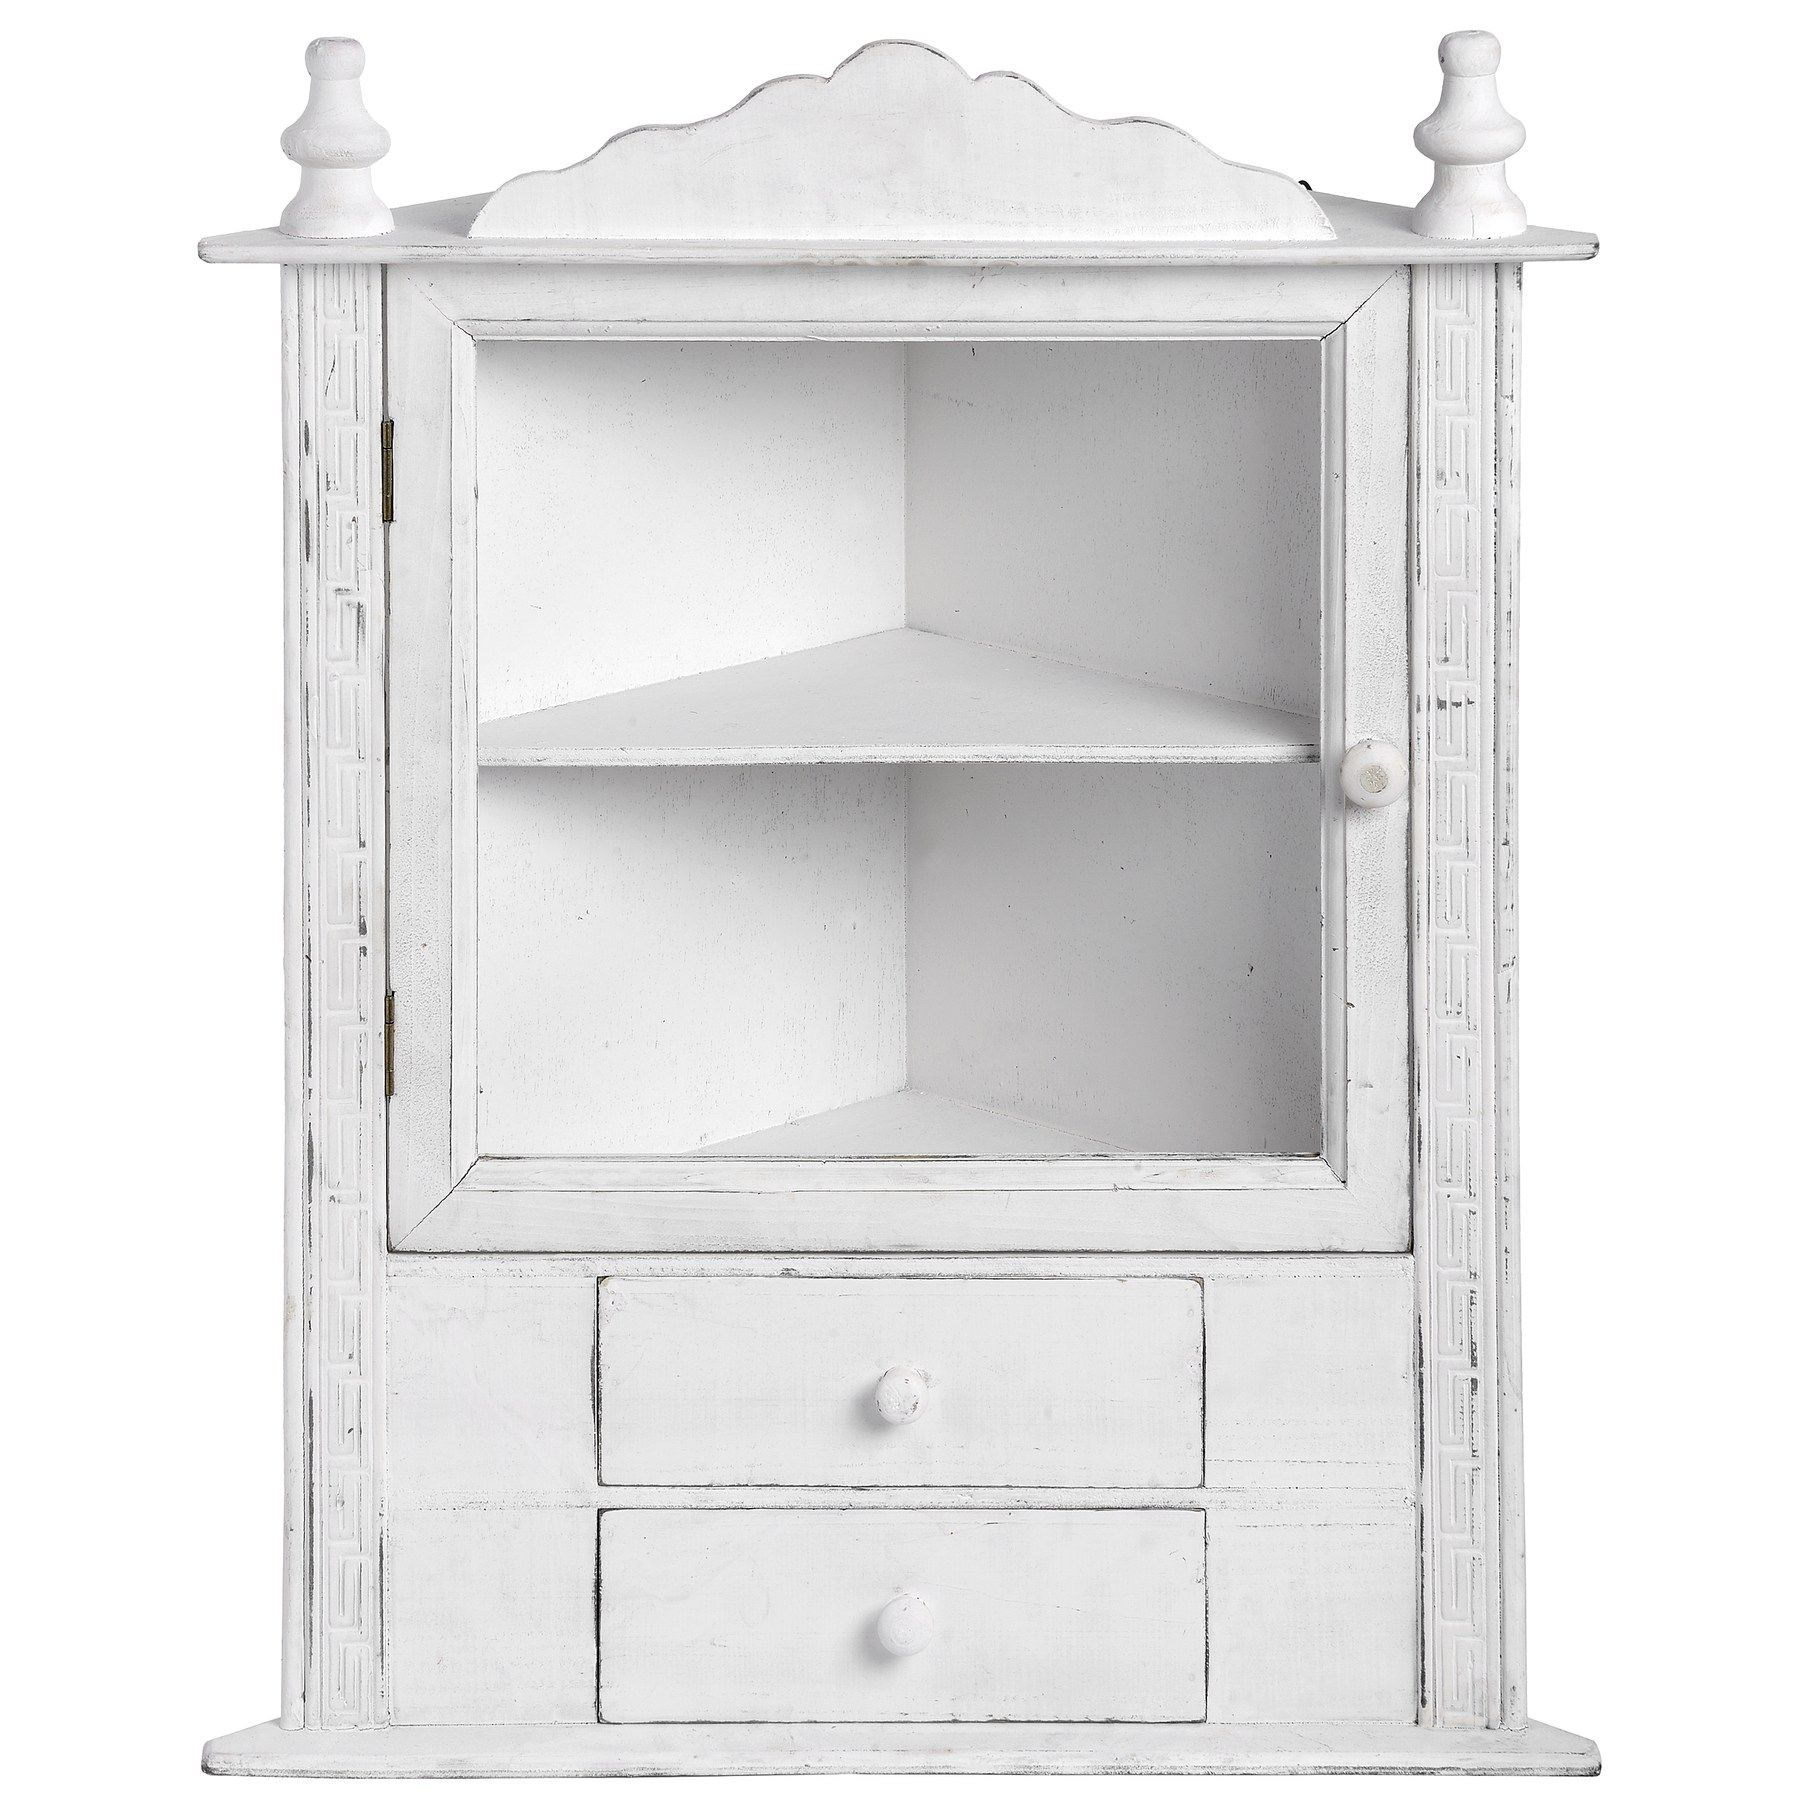 Antique White Distressed Wooden Corner Cabinet